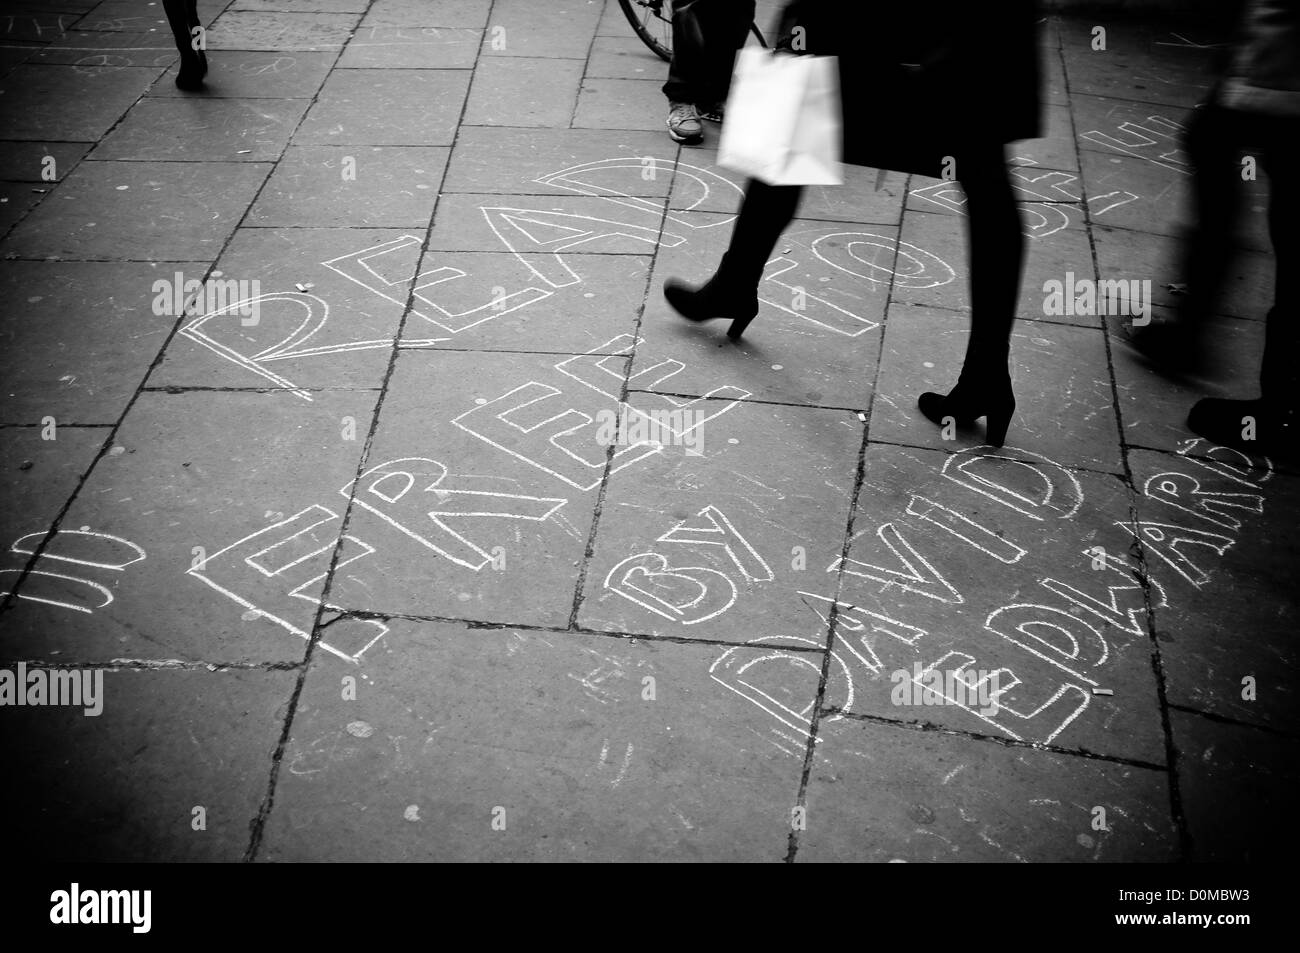 st pauls protest against capitalism in londond england pavement writing - Stock Image